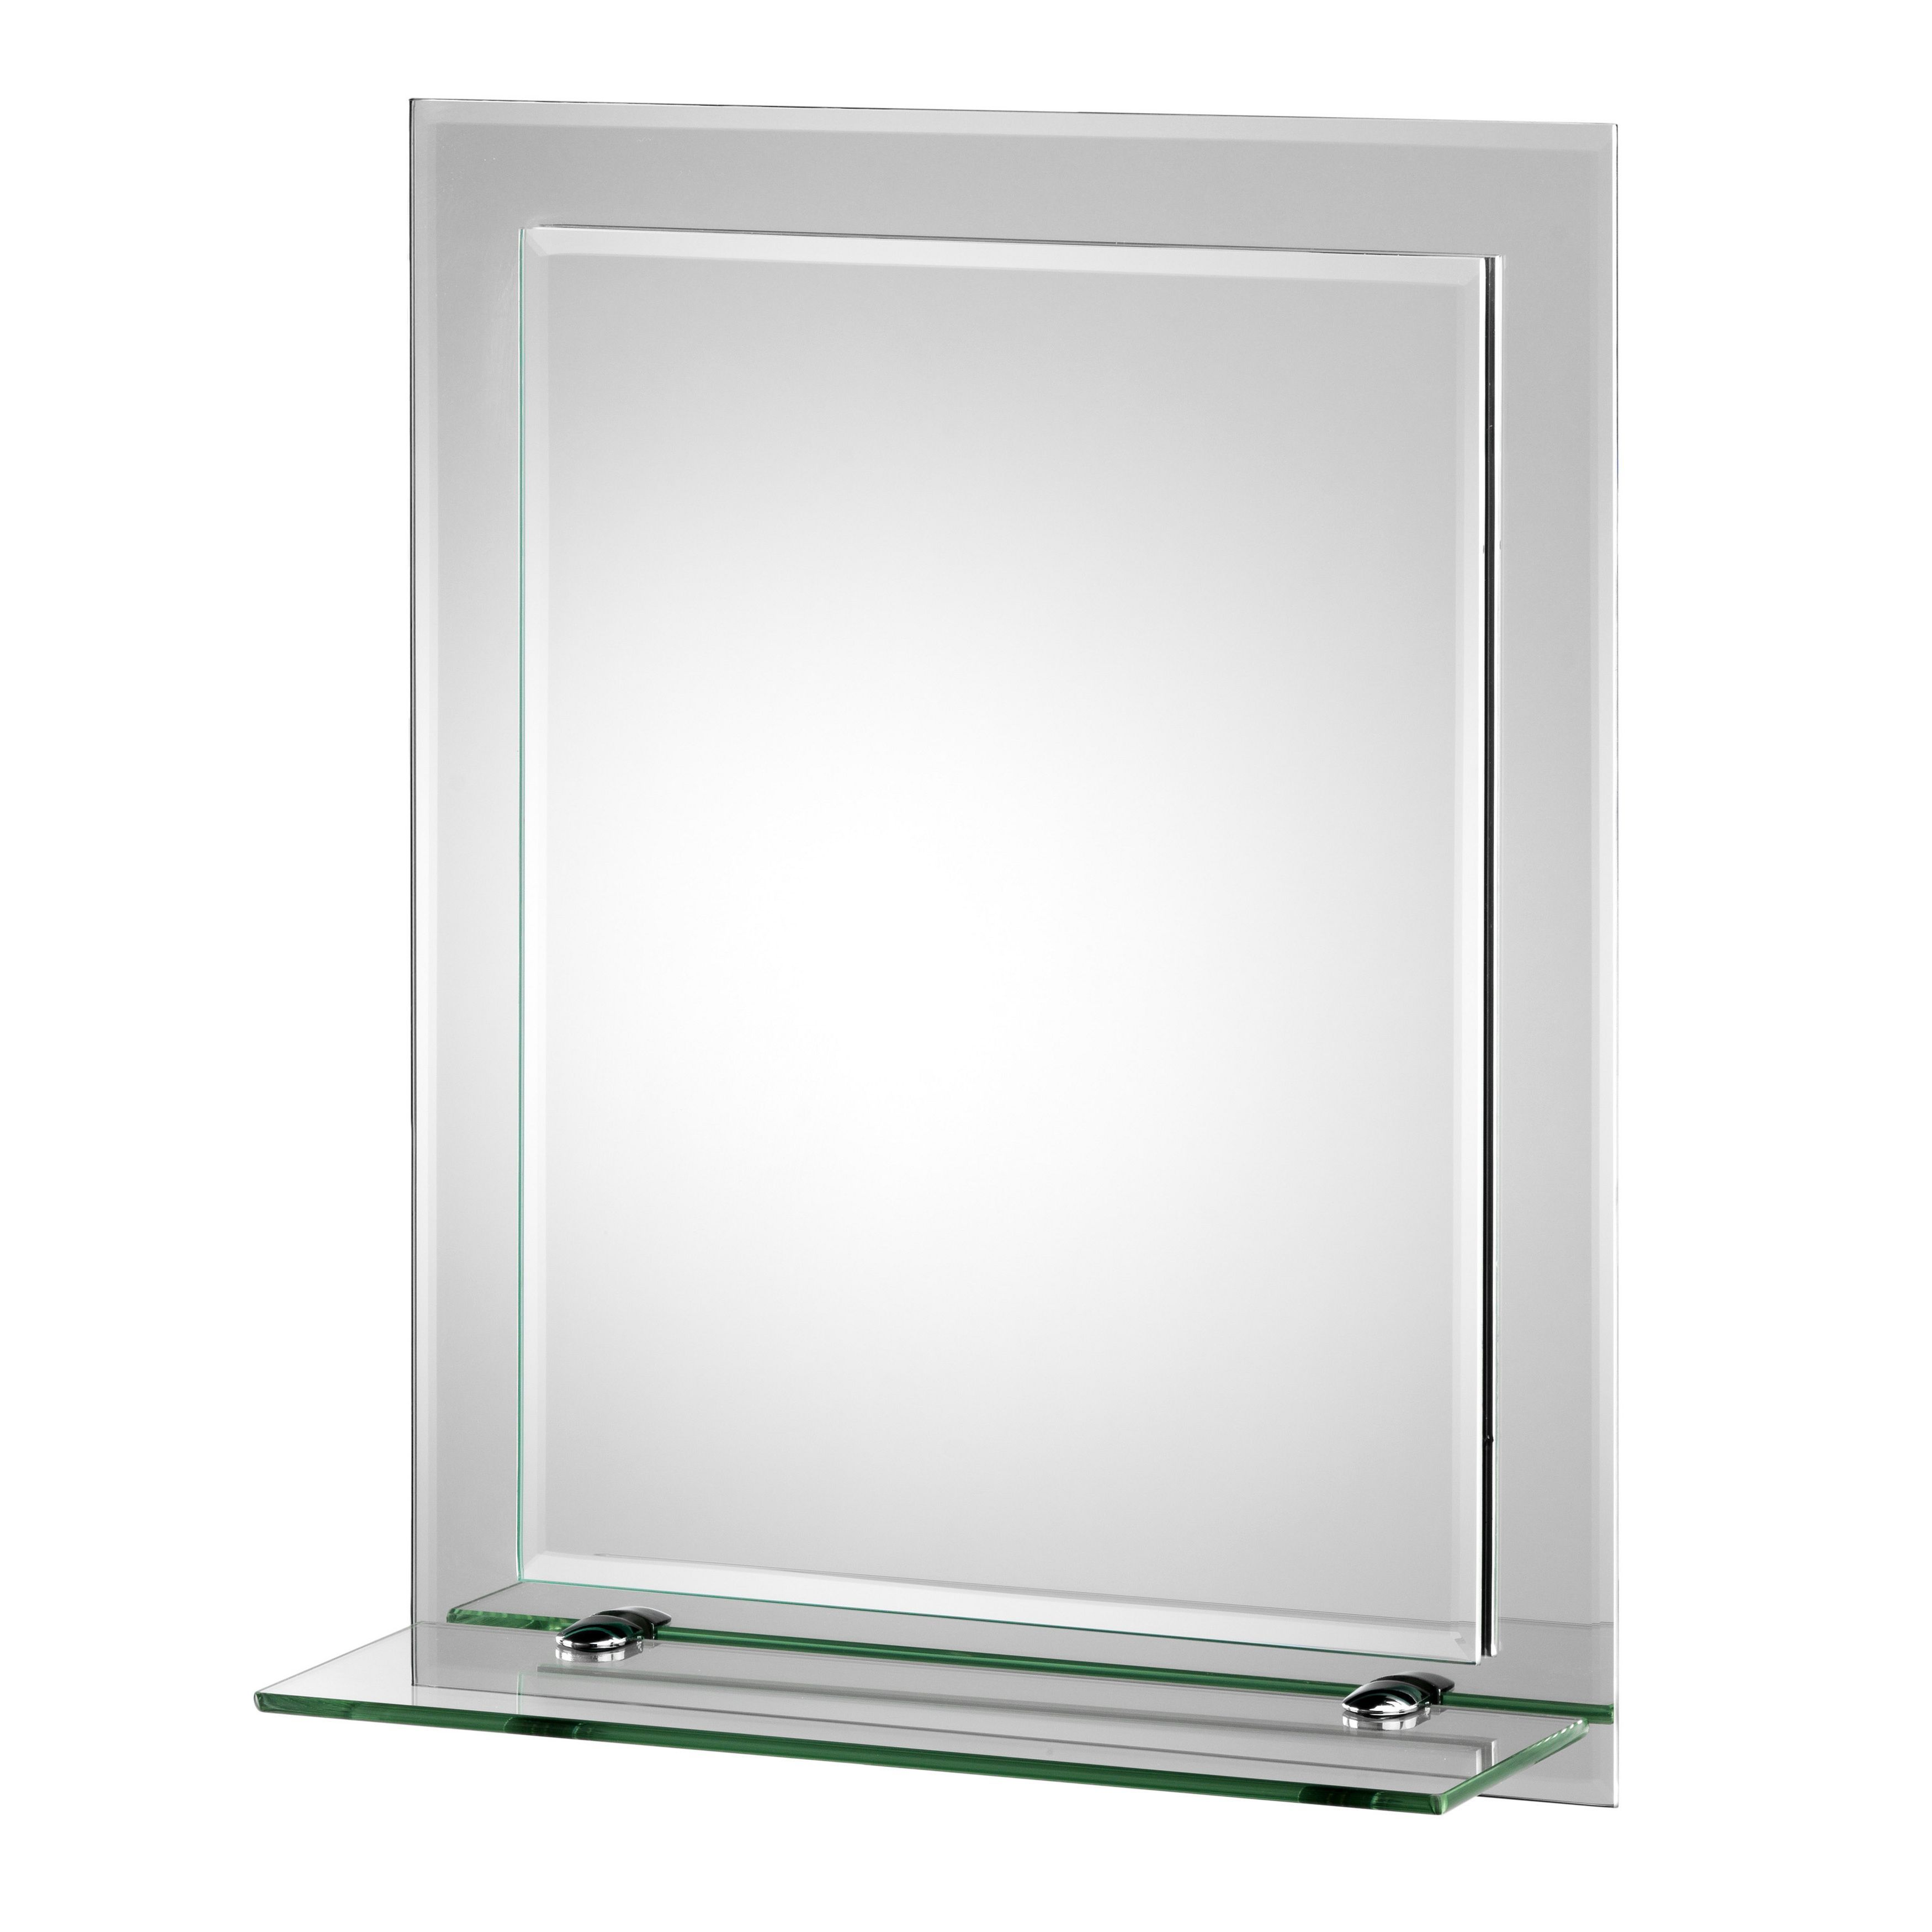 Croydex rydal beveled edge double layer wall mirror with shelf and